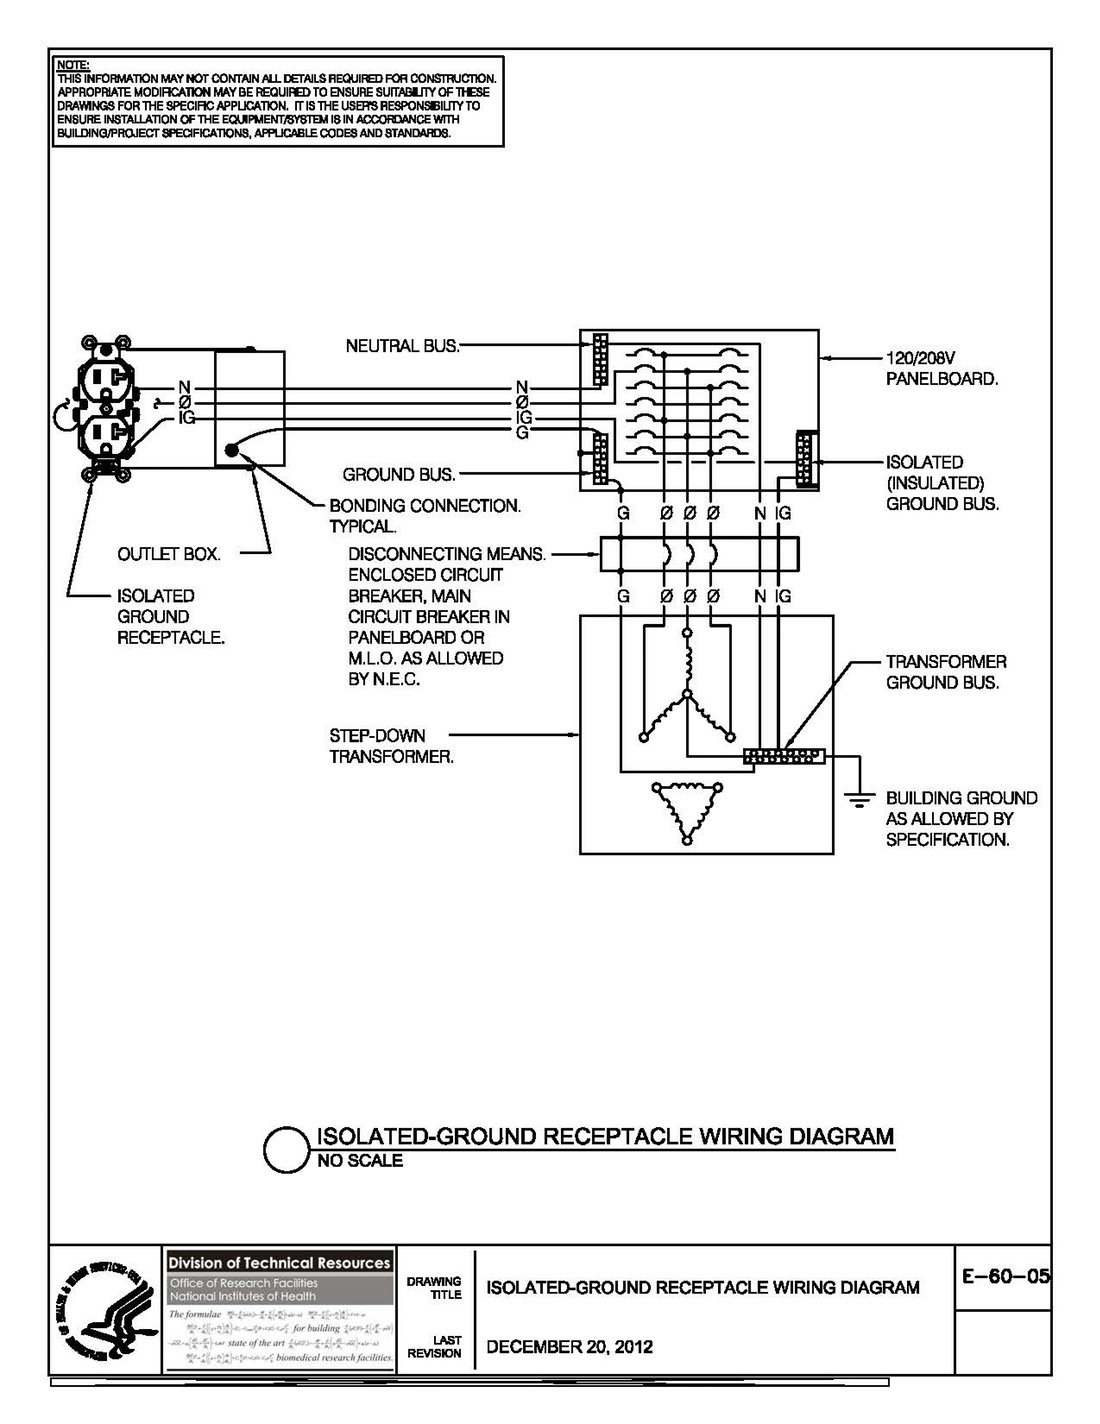 Wiring Diagram Furthermore The Dimensions Are Given In The Diagram